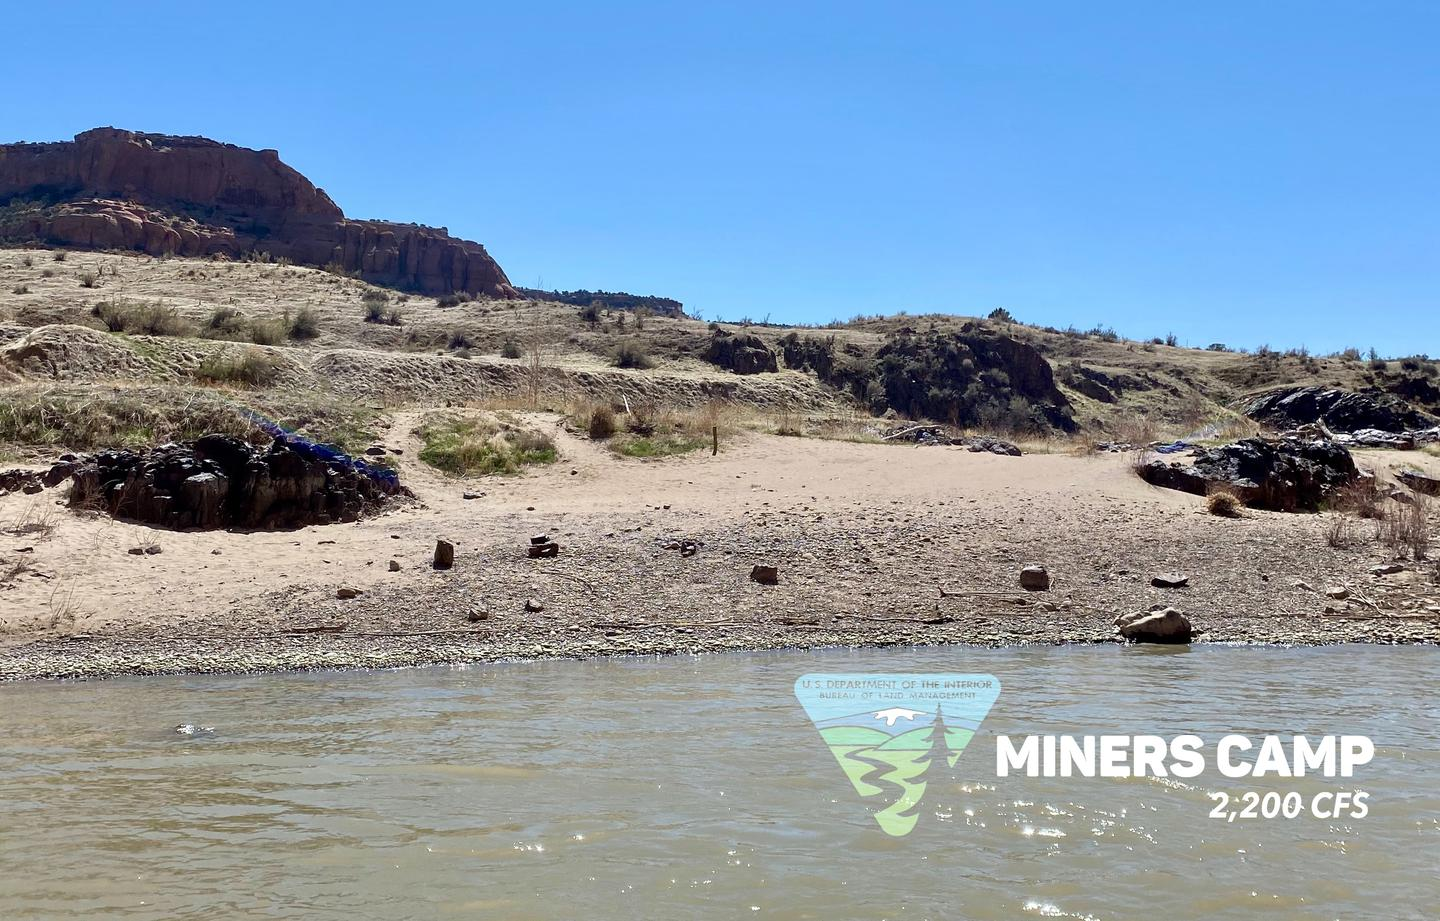 Miners Camp, first camp in the canyon on river-left.Miners Camp